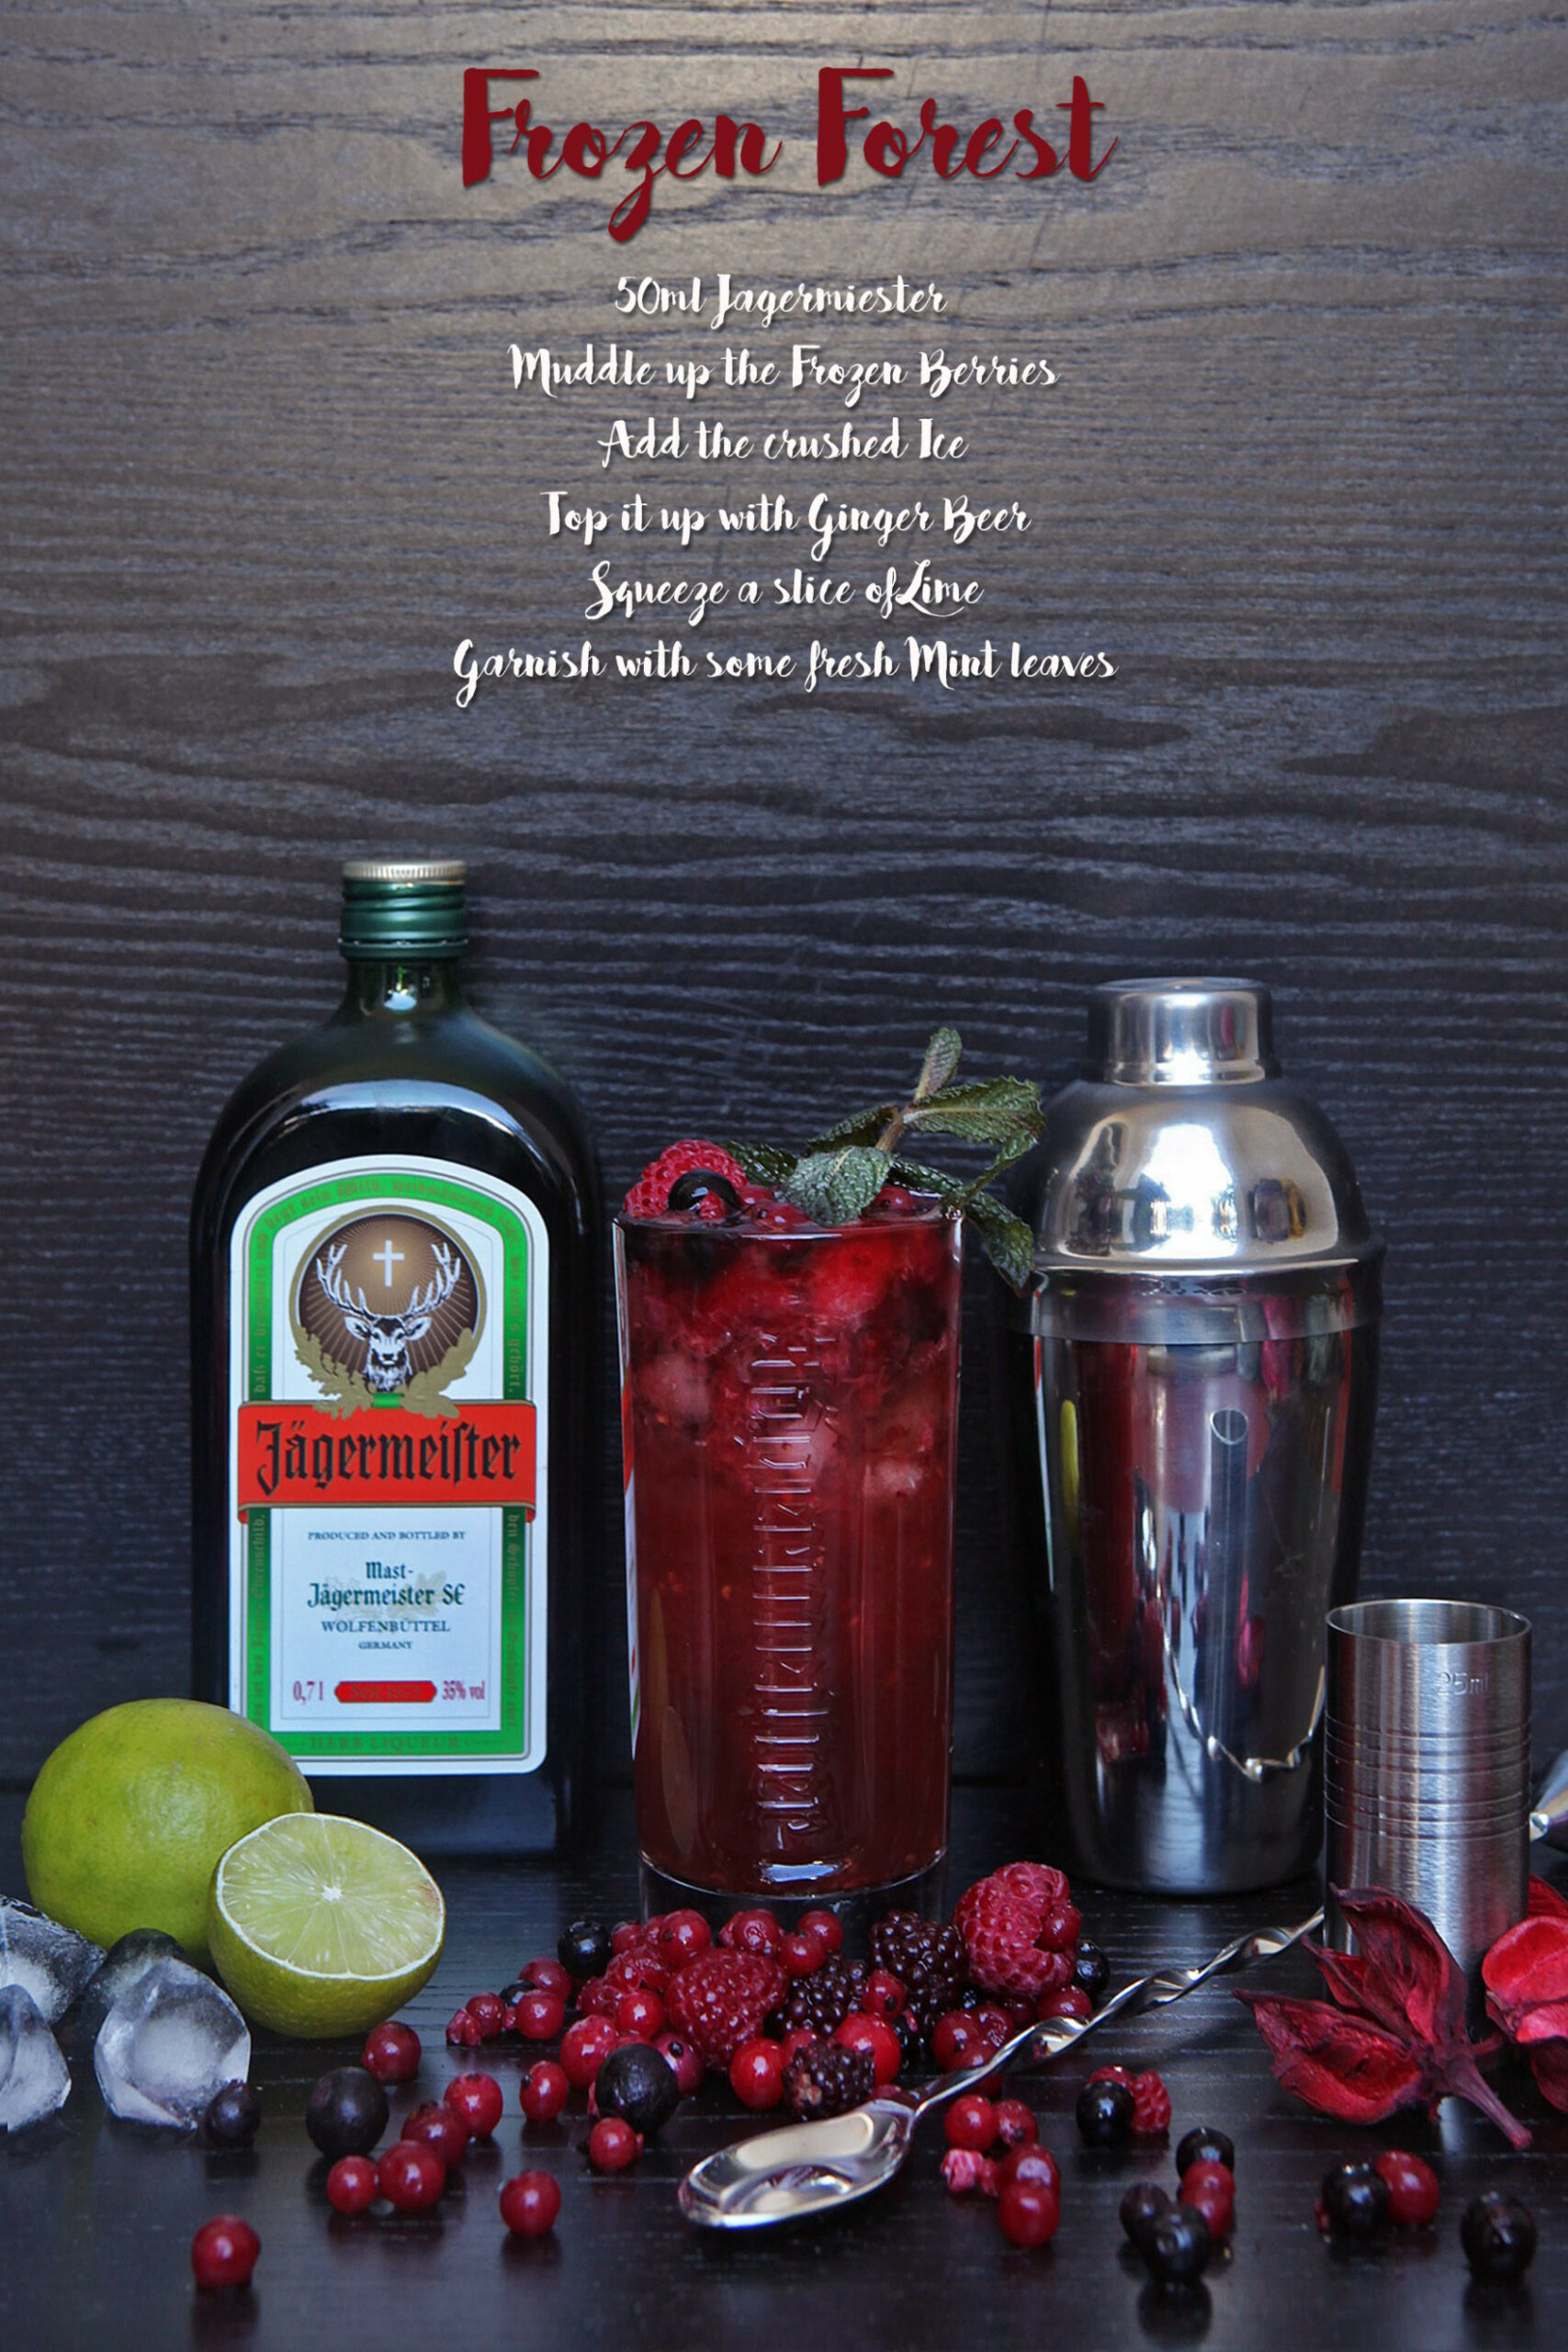 4 new Jagermeister Cocktails to try at home - food recipes using jagermeister